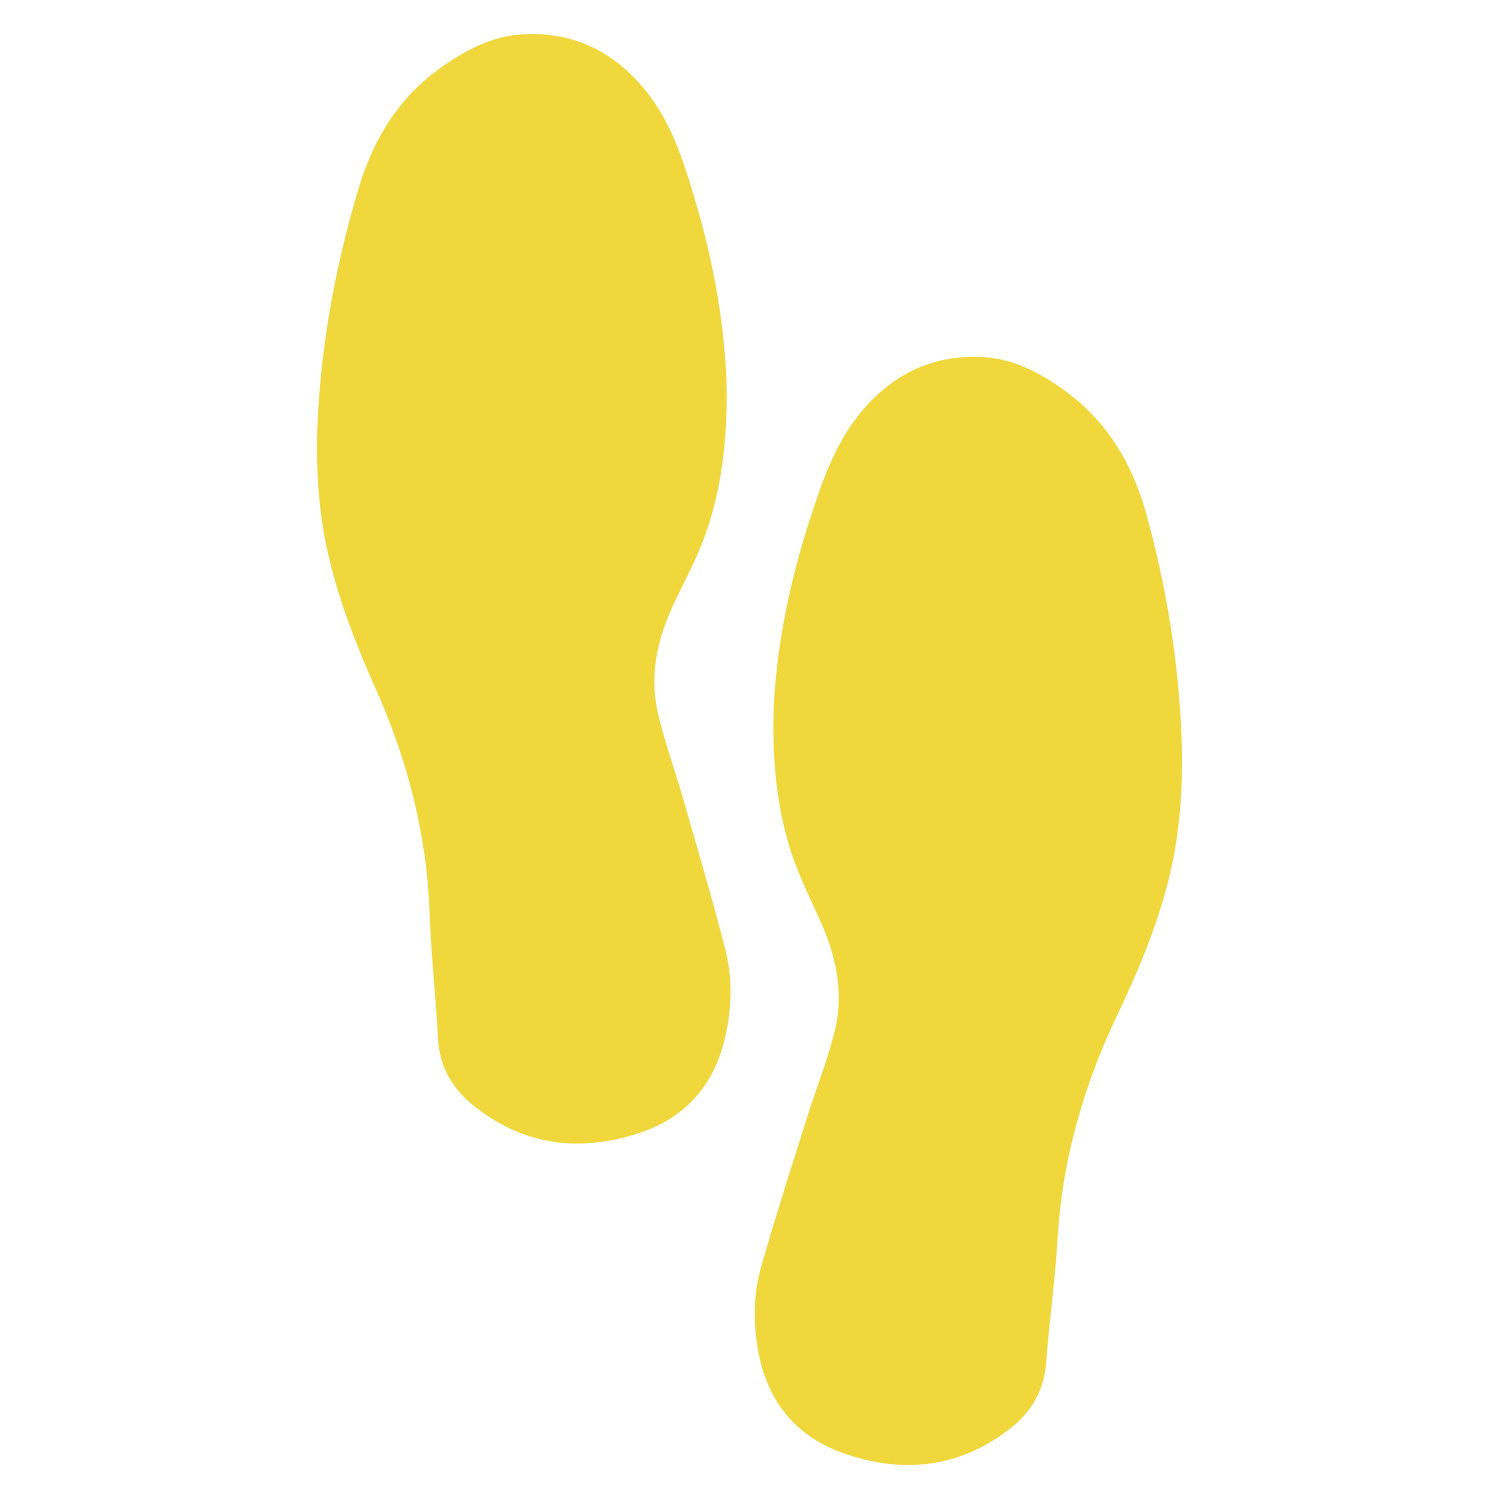 Primary image for LiteMark Mini Size Yellow Removable Footprint Decals  - Pack of 20 (10 Pairs)